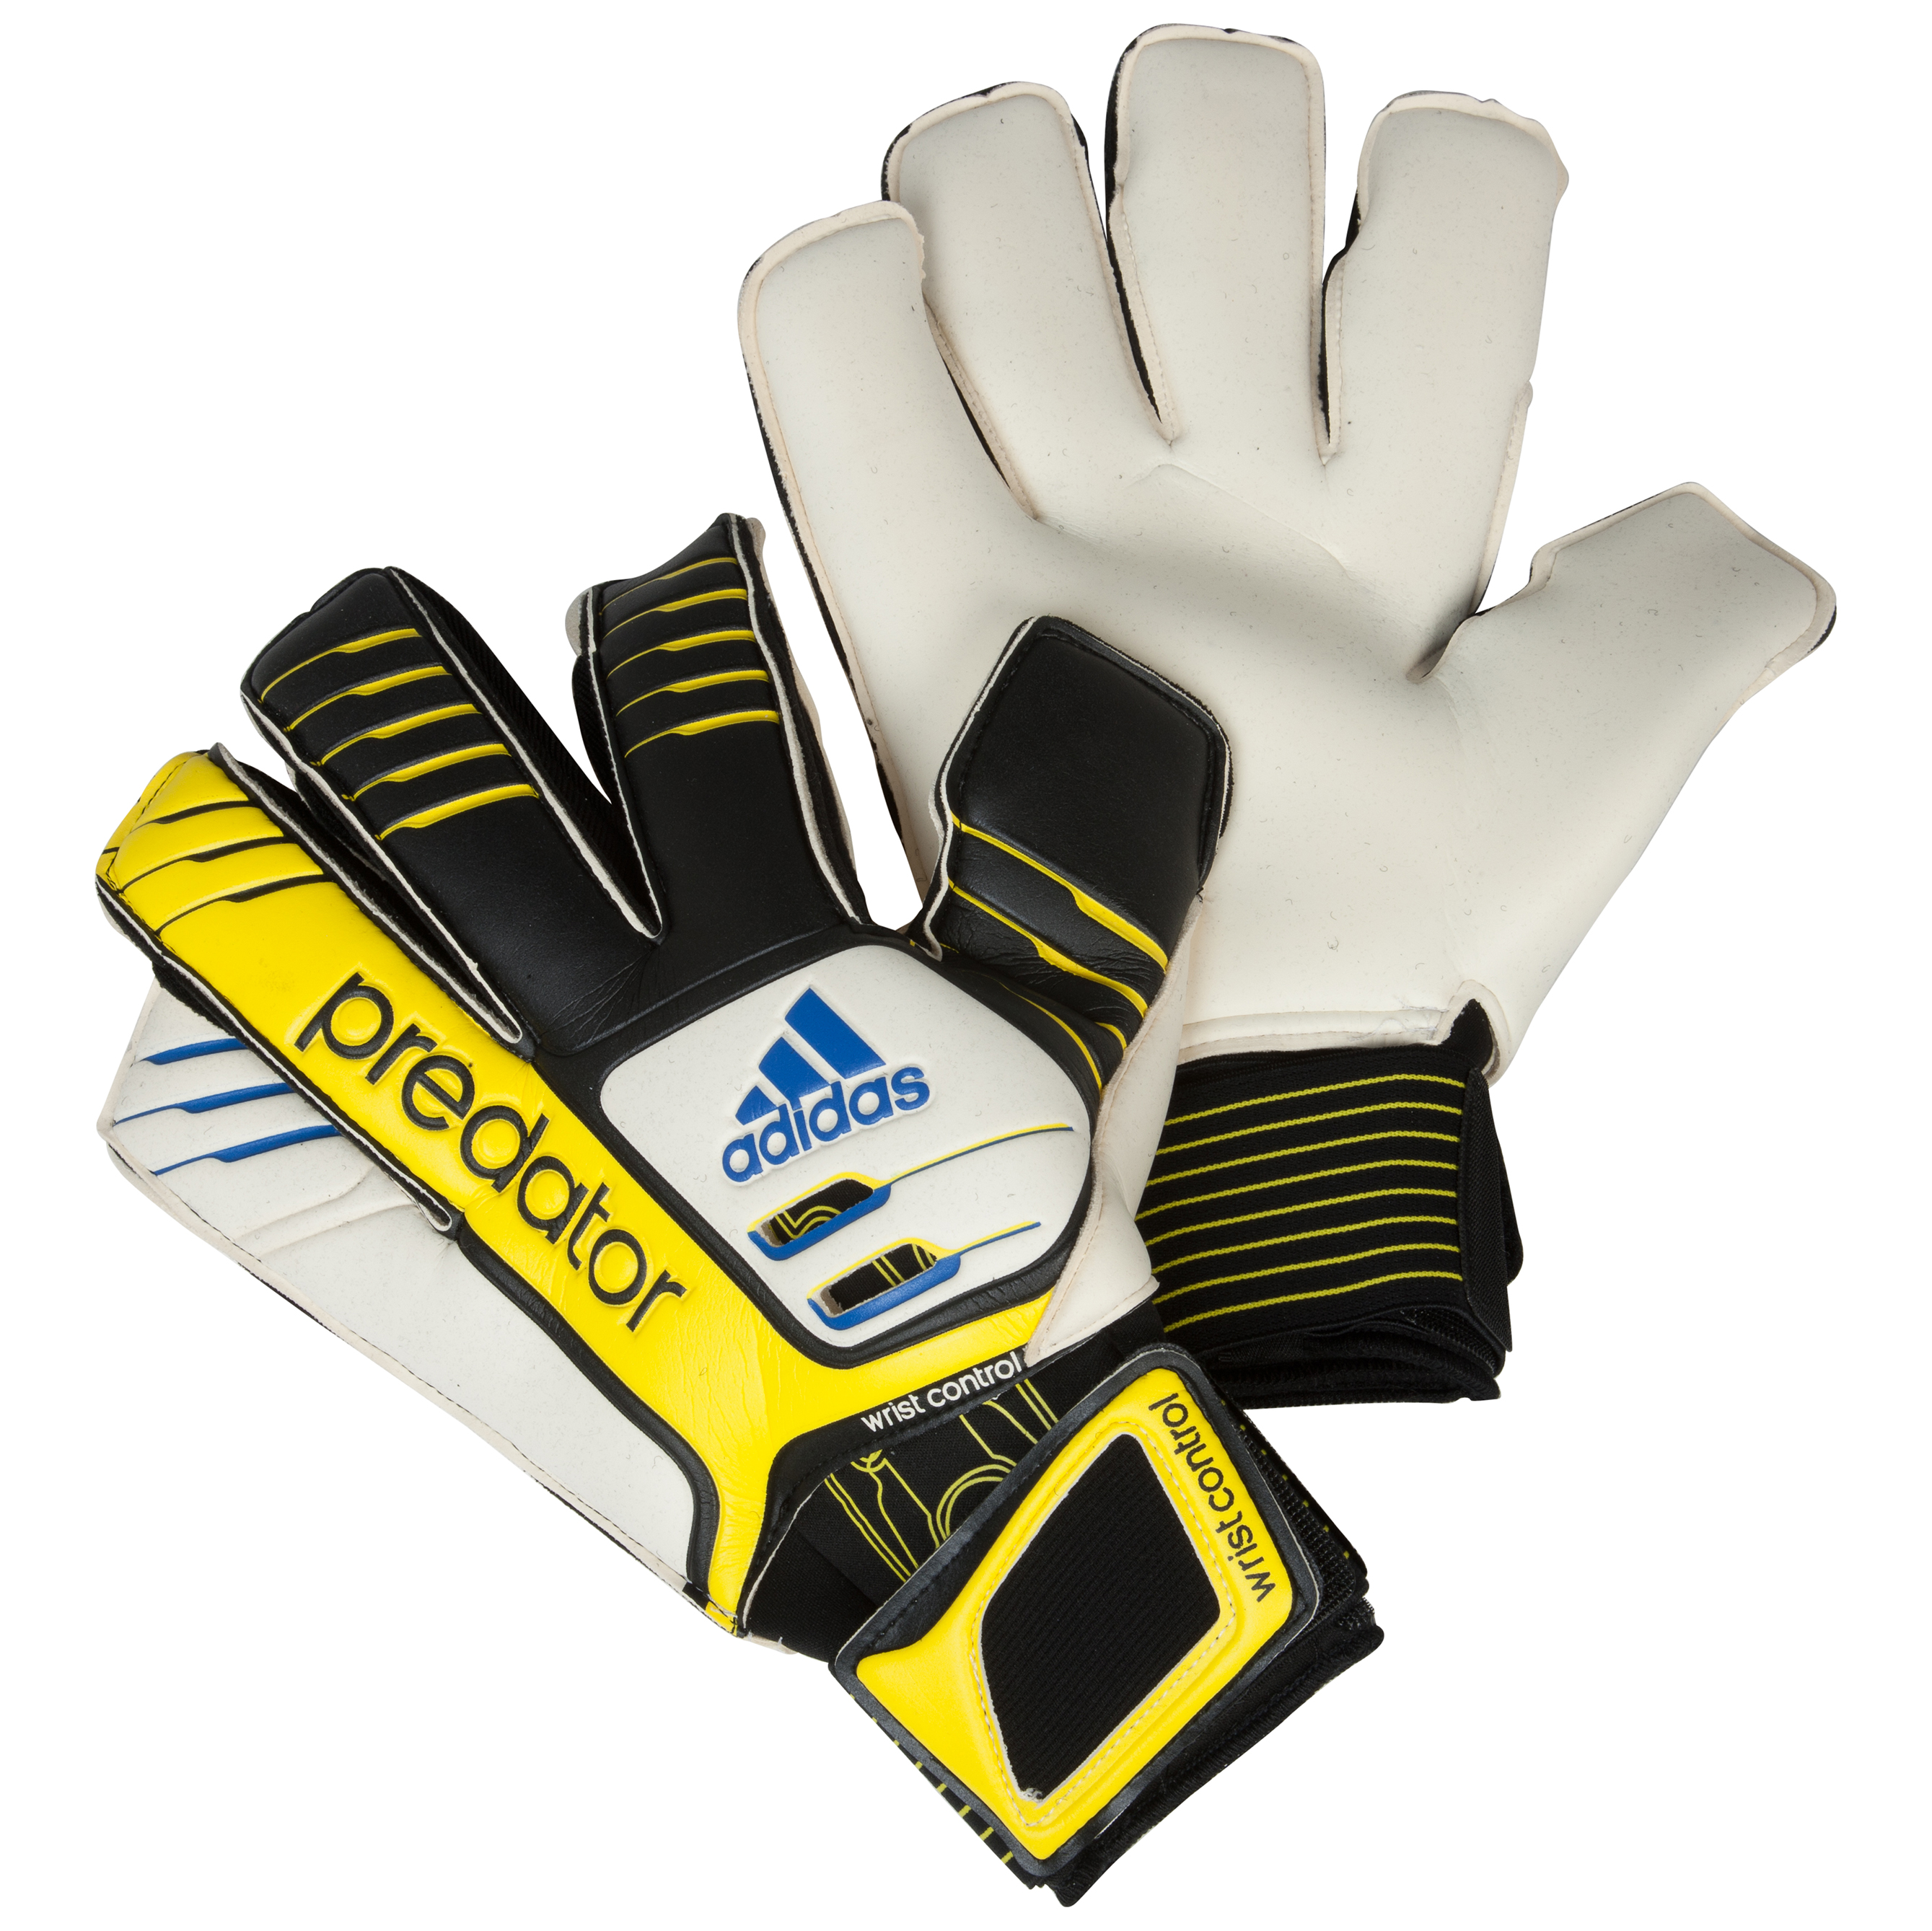 Adidas Predator Wrist Control Goalkeeper Gloves - Black/White/Vivid Yellow /Prime Blue